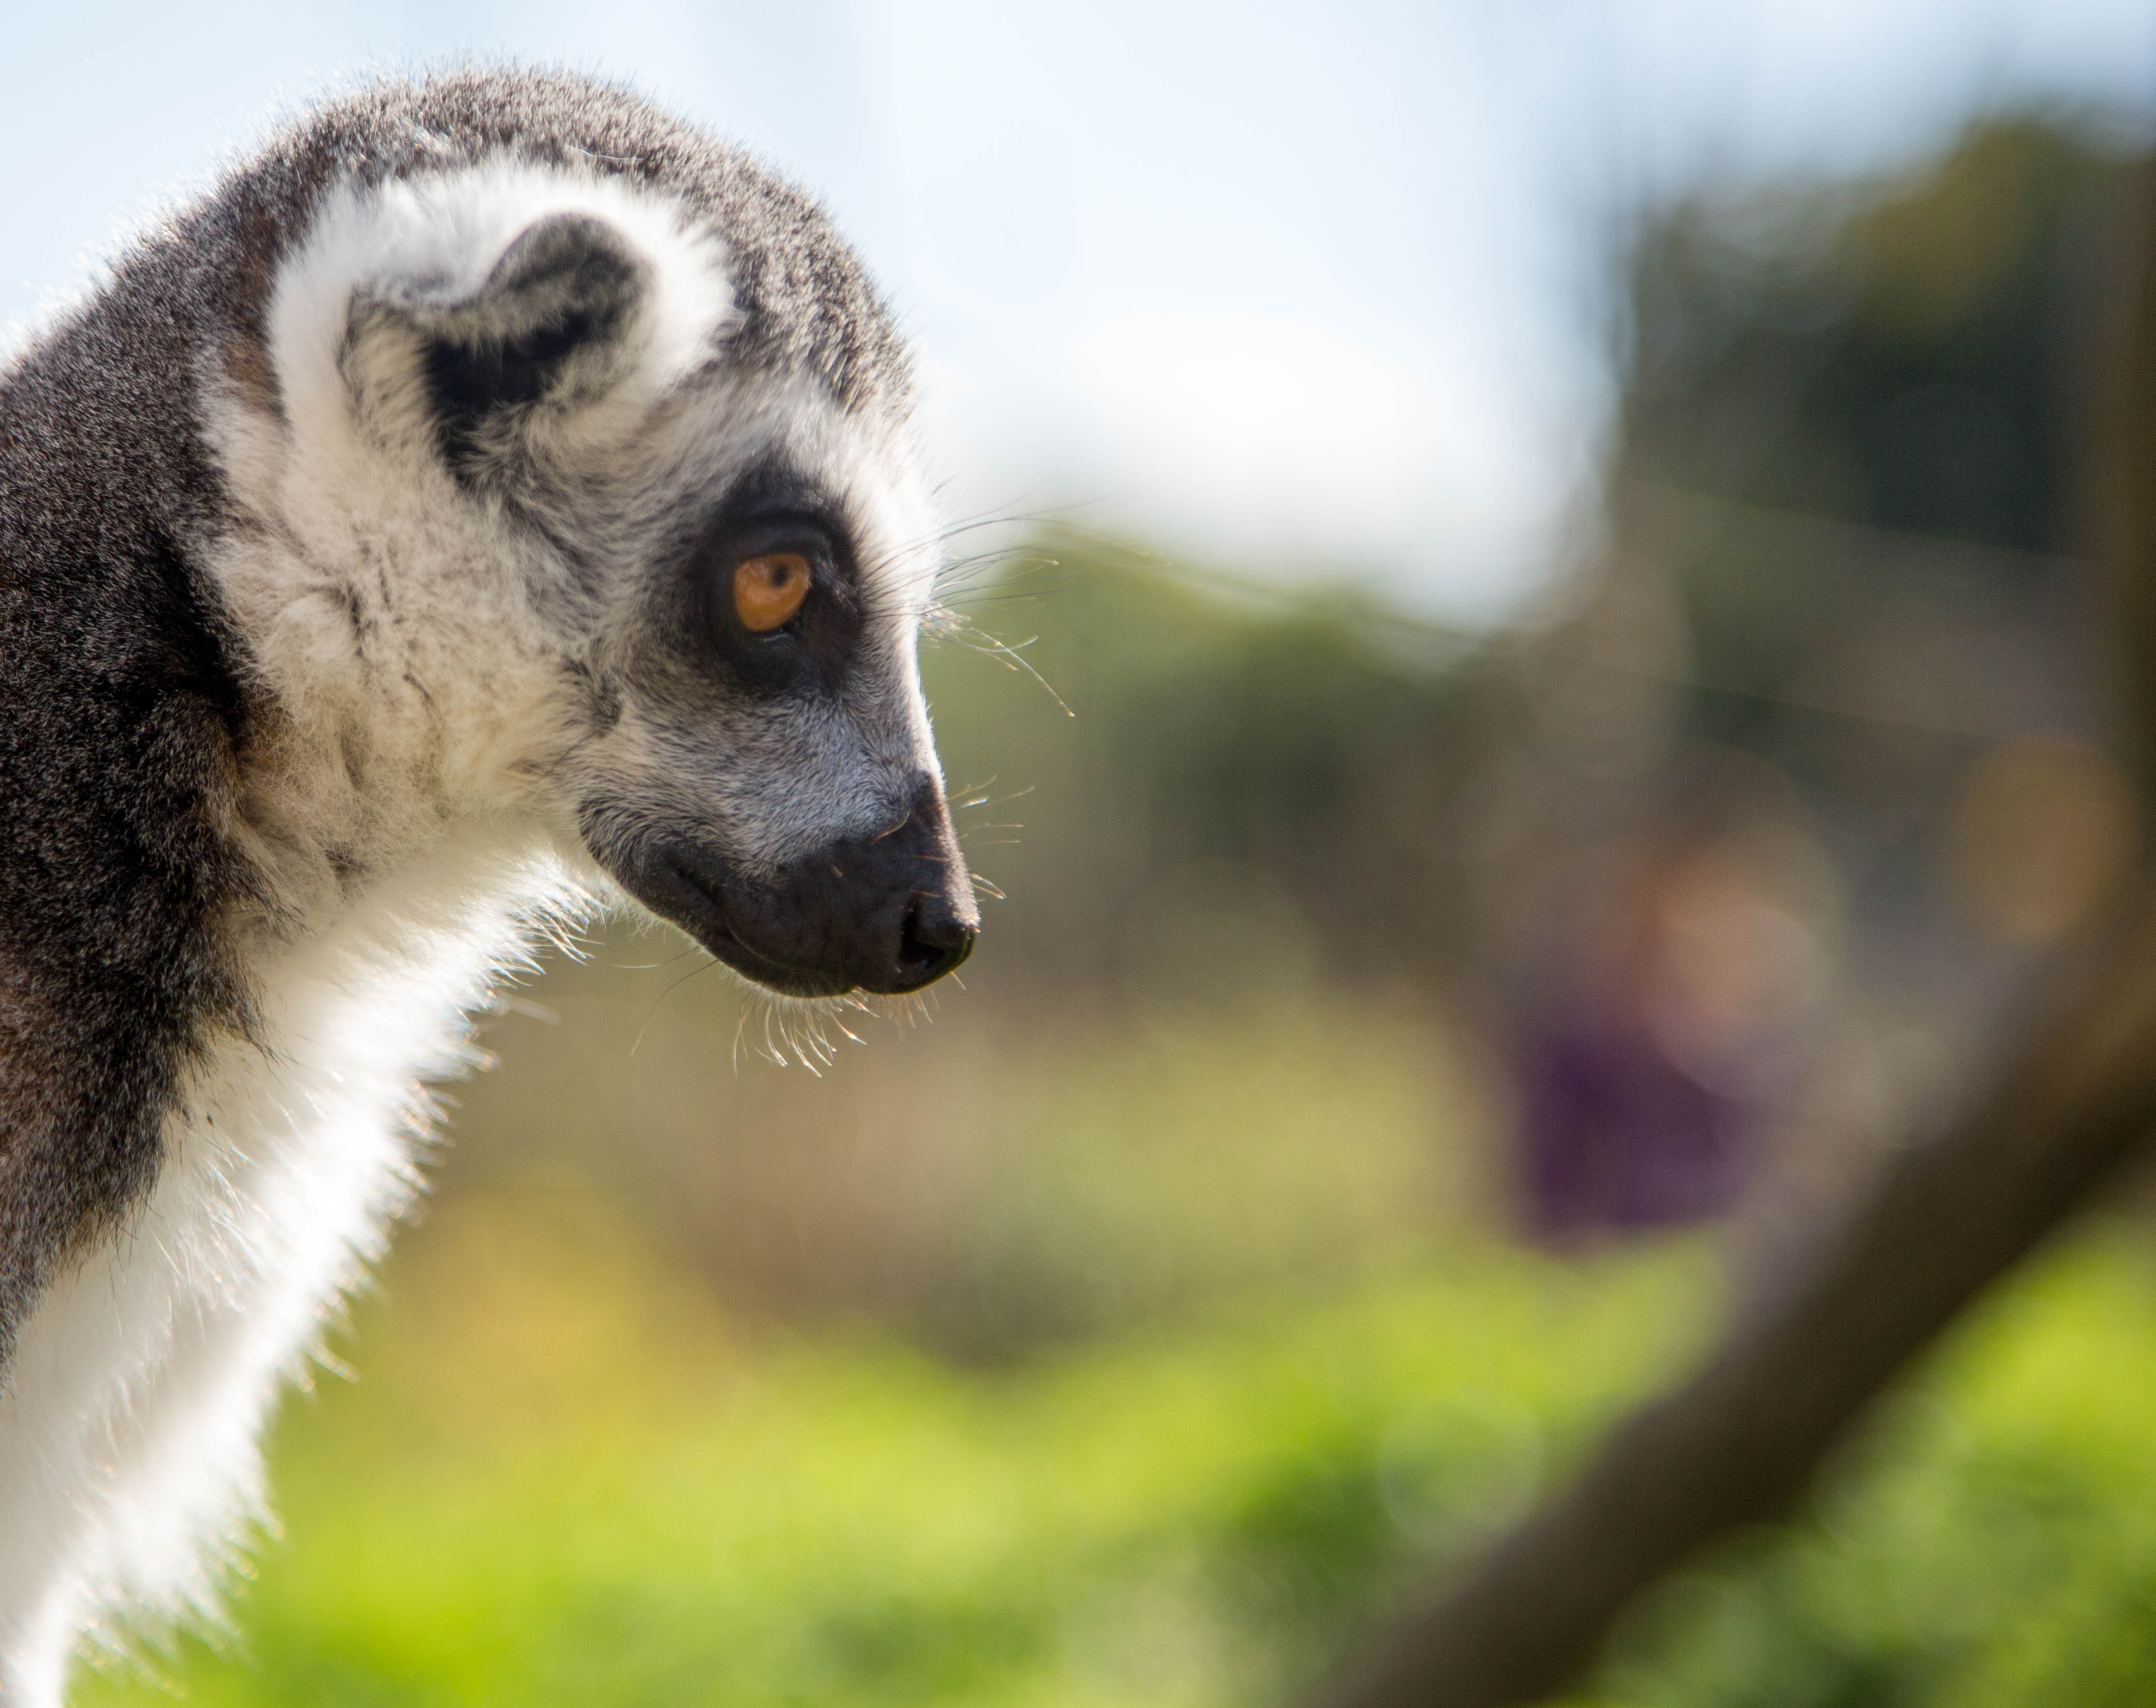 111429 download wallpaper Animals, Lemur, Muzzle, Profile, Sight, Opinion screensavers and pictures for free